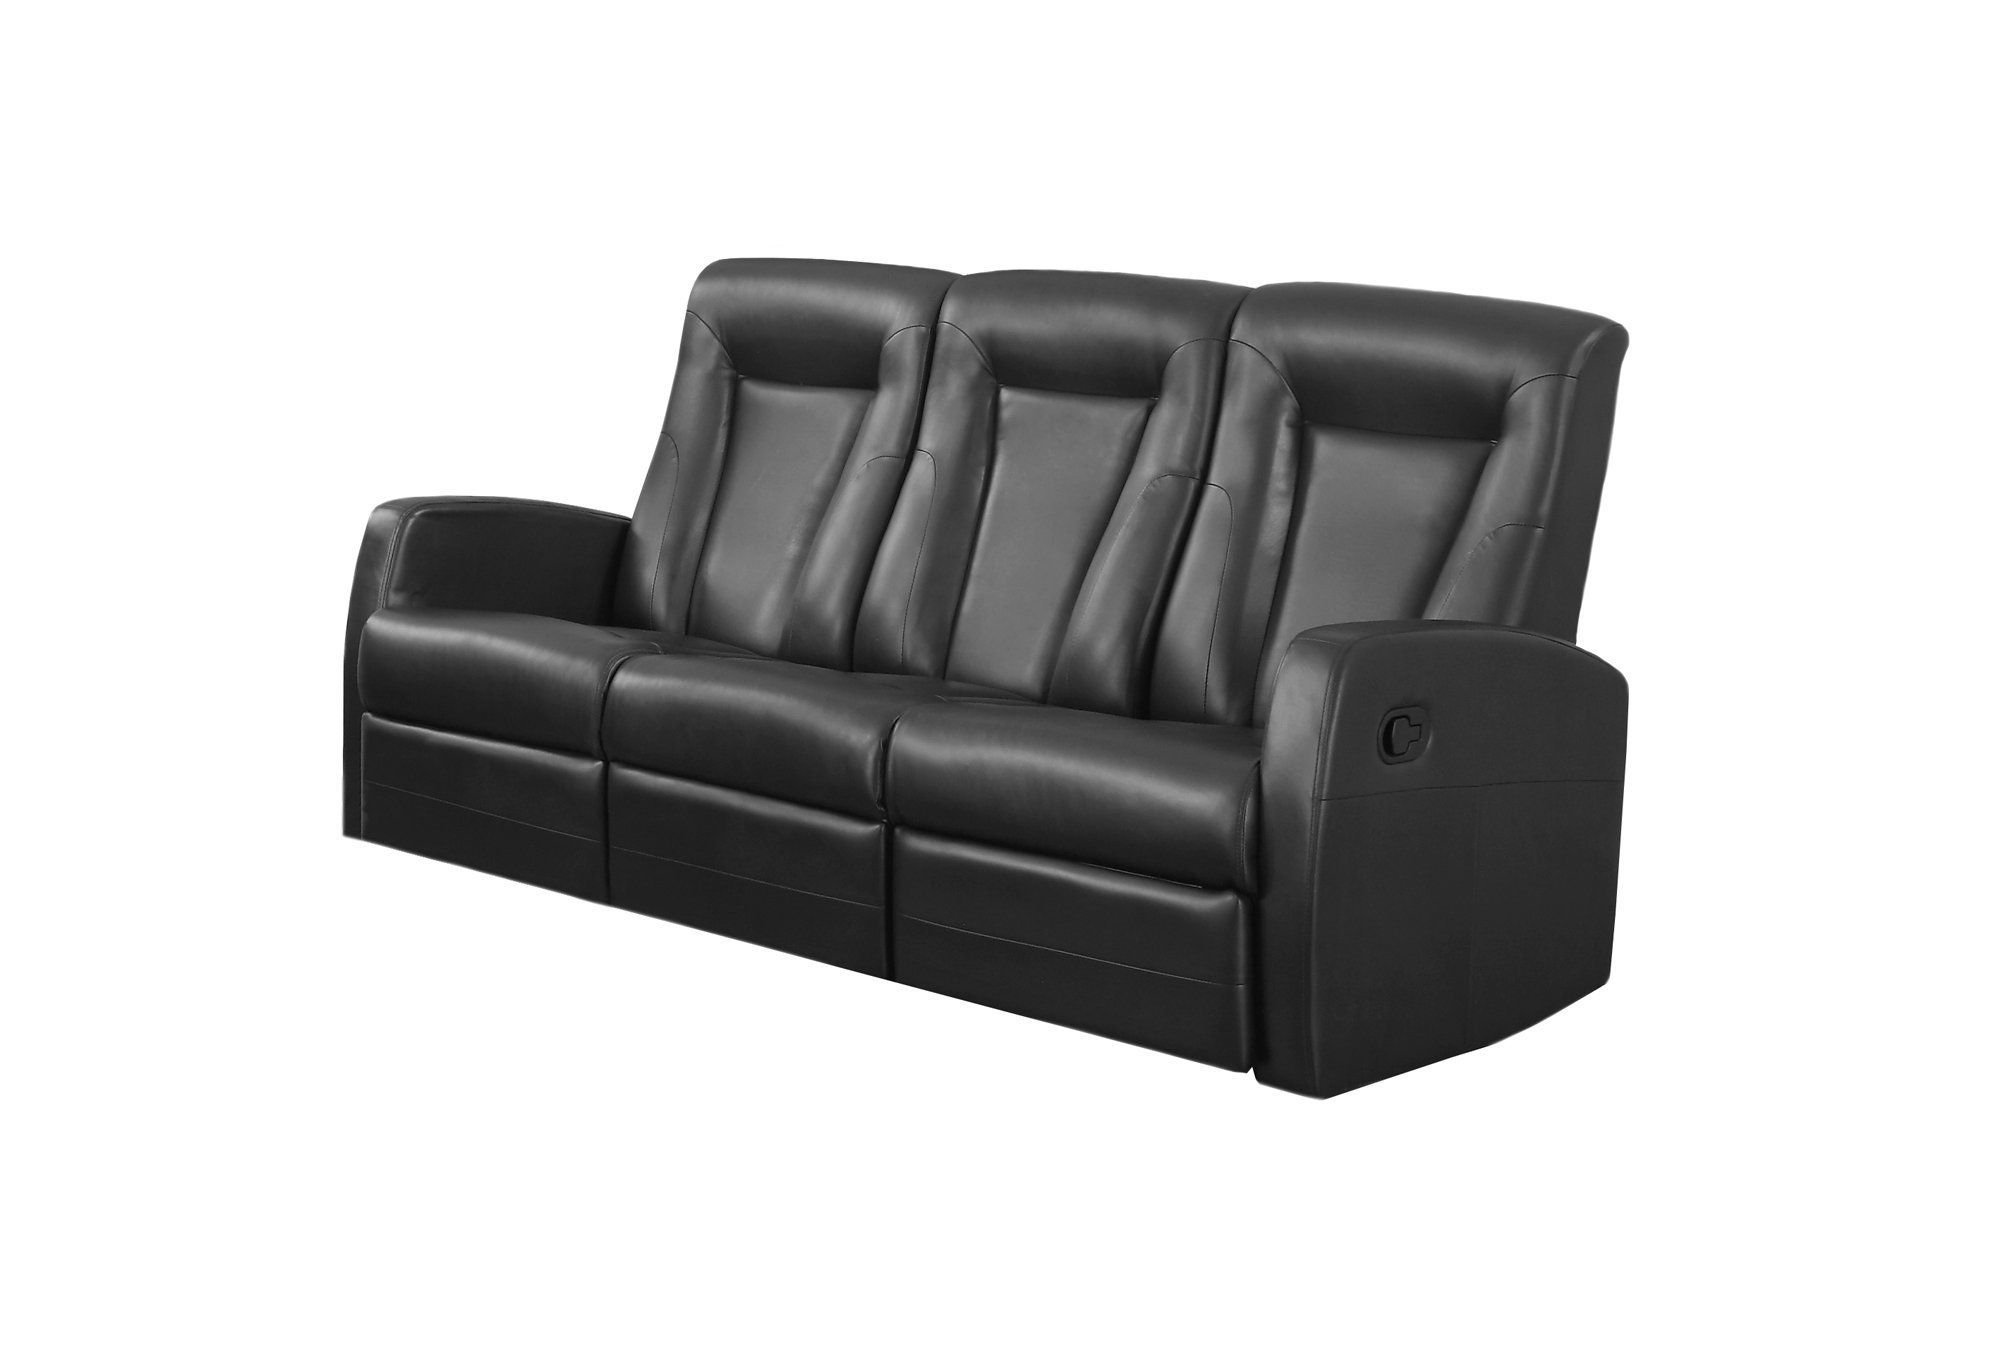 Miraculous Reclining Sofa Black Bonded Leather Products Leather Onthecornerstone Fun Painted Chair Ideas Images Onthecornerstoneorg